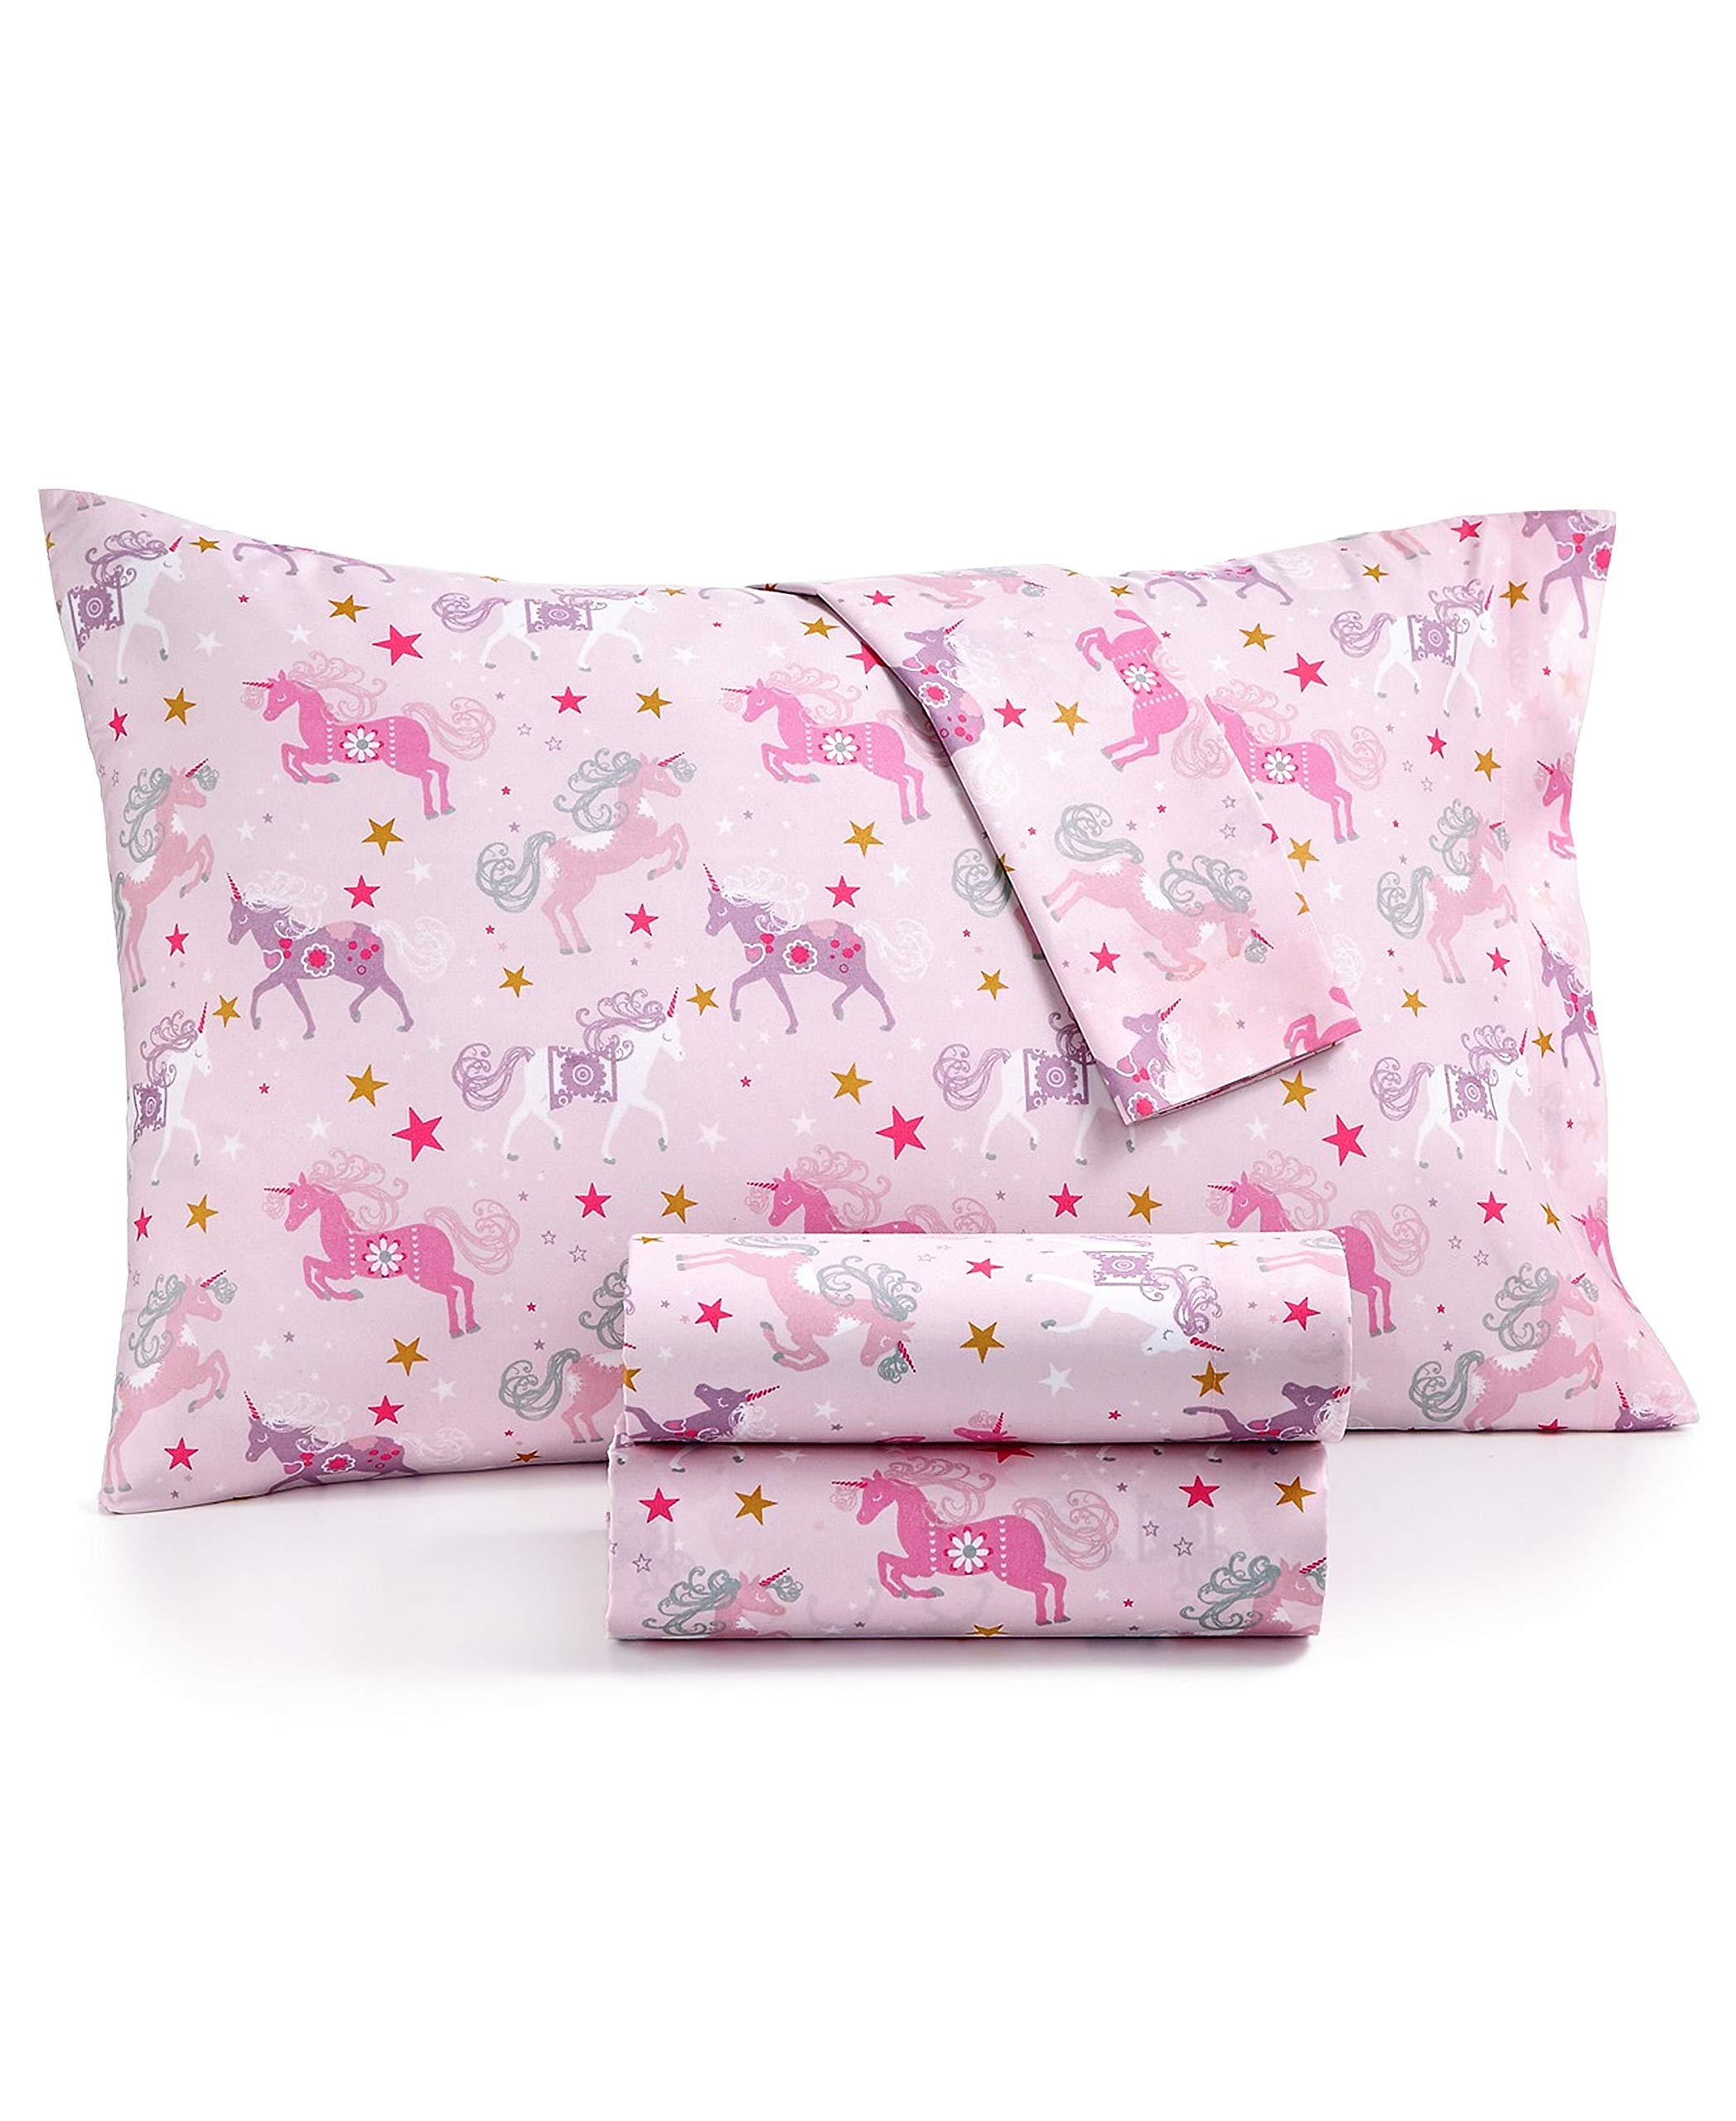 Kids Zone Ornate Pink Unicorn Sheets with Gold and White Star Print Purple and Magenta on Light Pink (Full) by Kids Zone